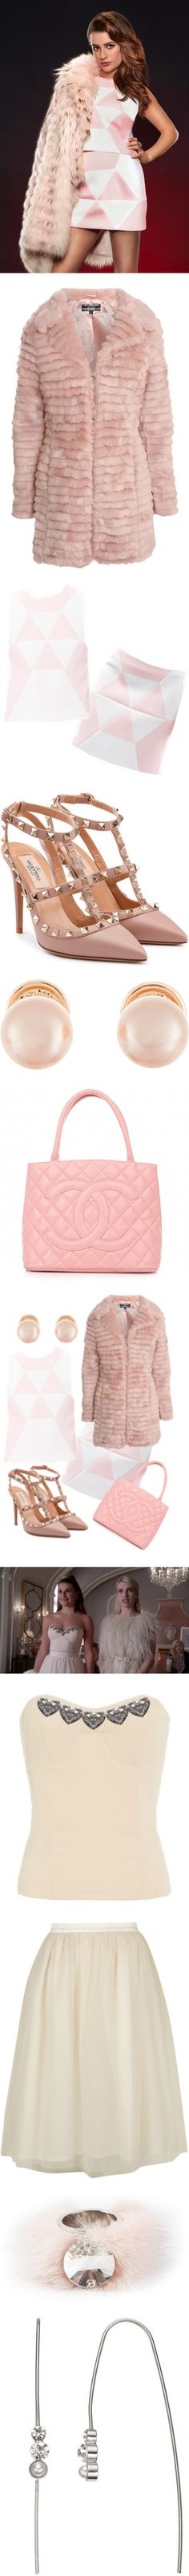 Chanel #6 by kristyxklein on Polyvore featuring women's fashion, outerwear, coats, fur, jackets, faux fur coats, pink faux fur coat, pale pink coat, pink coat and long sleeve coat